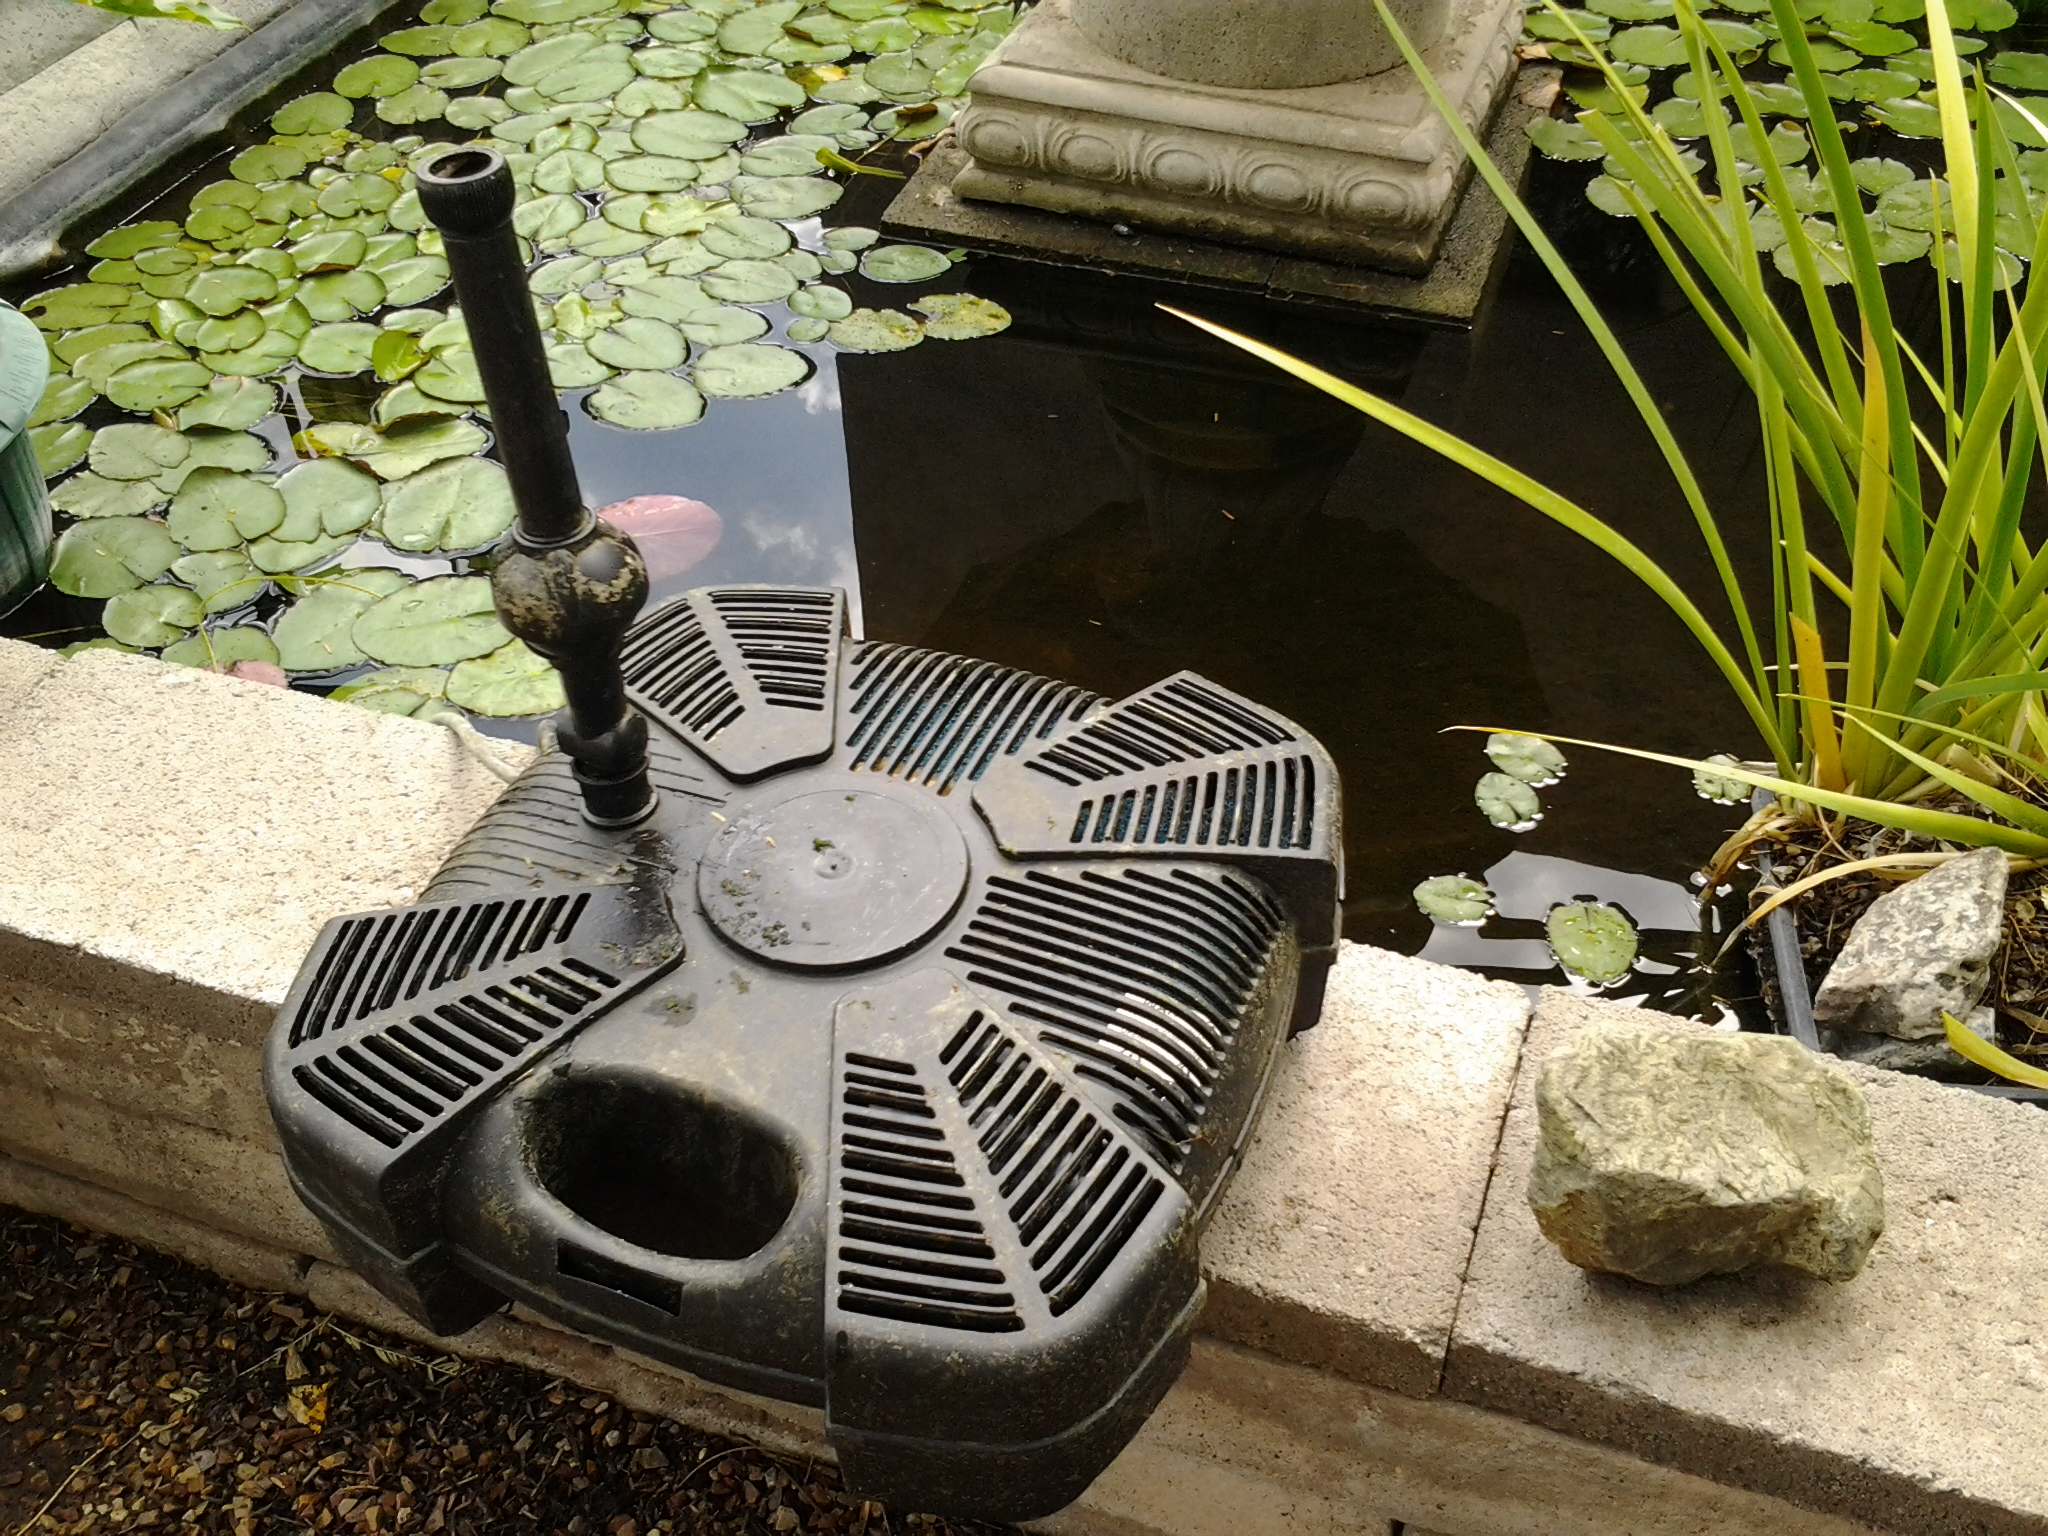 Best pond filter system all in one lifegard pump with uv for Used fish pond filters